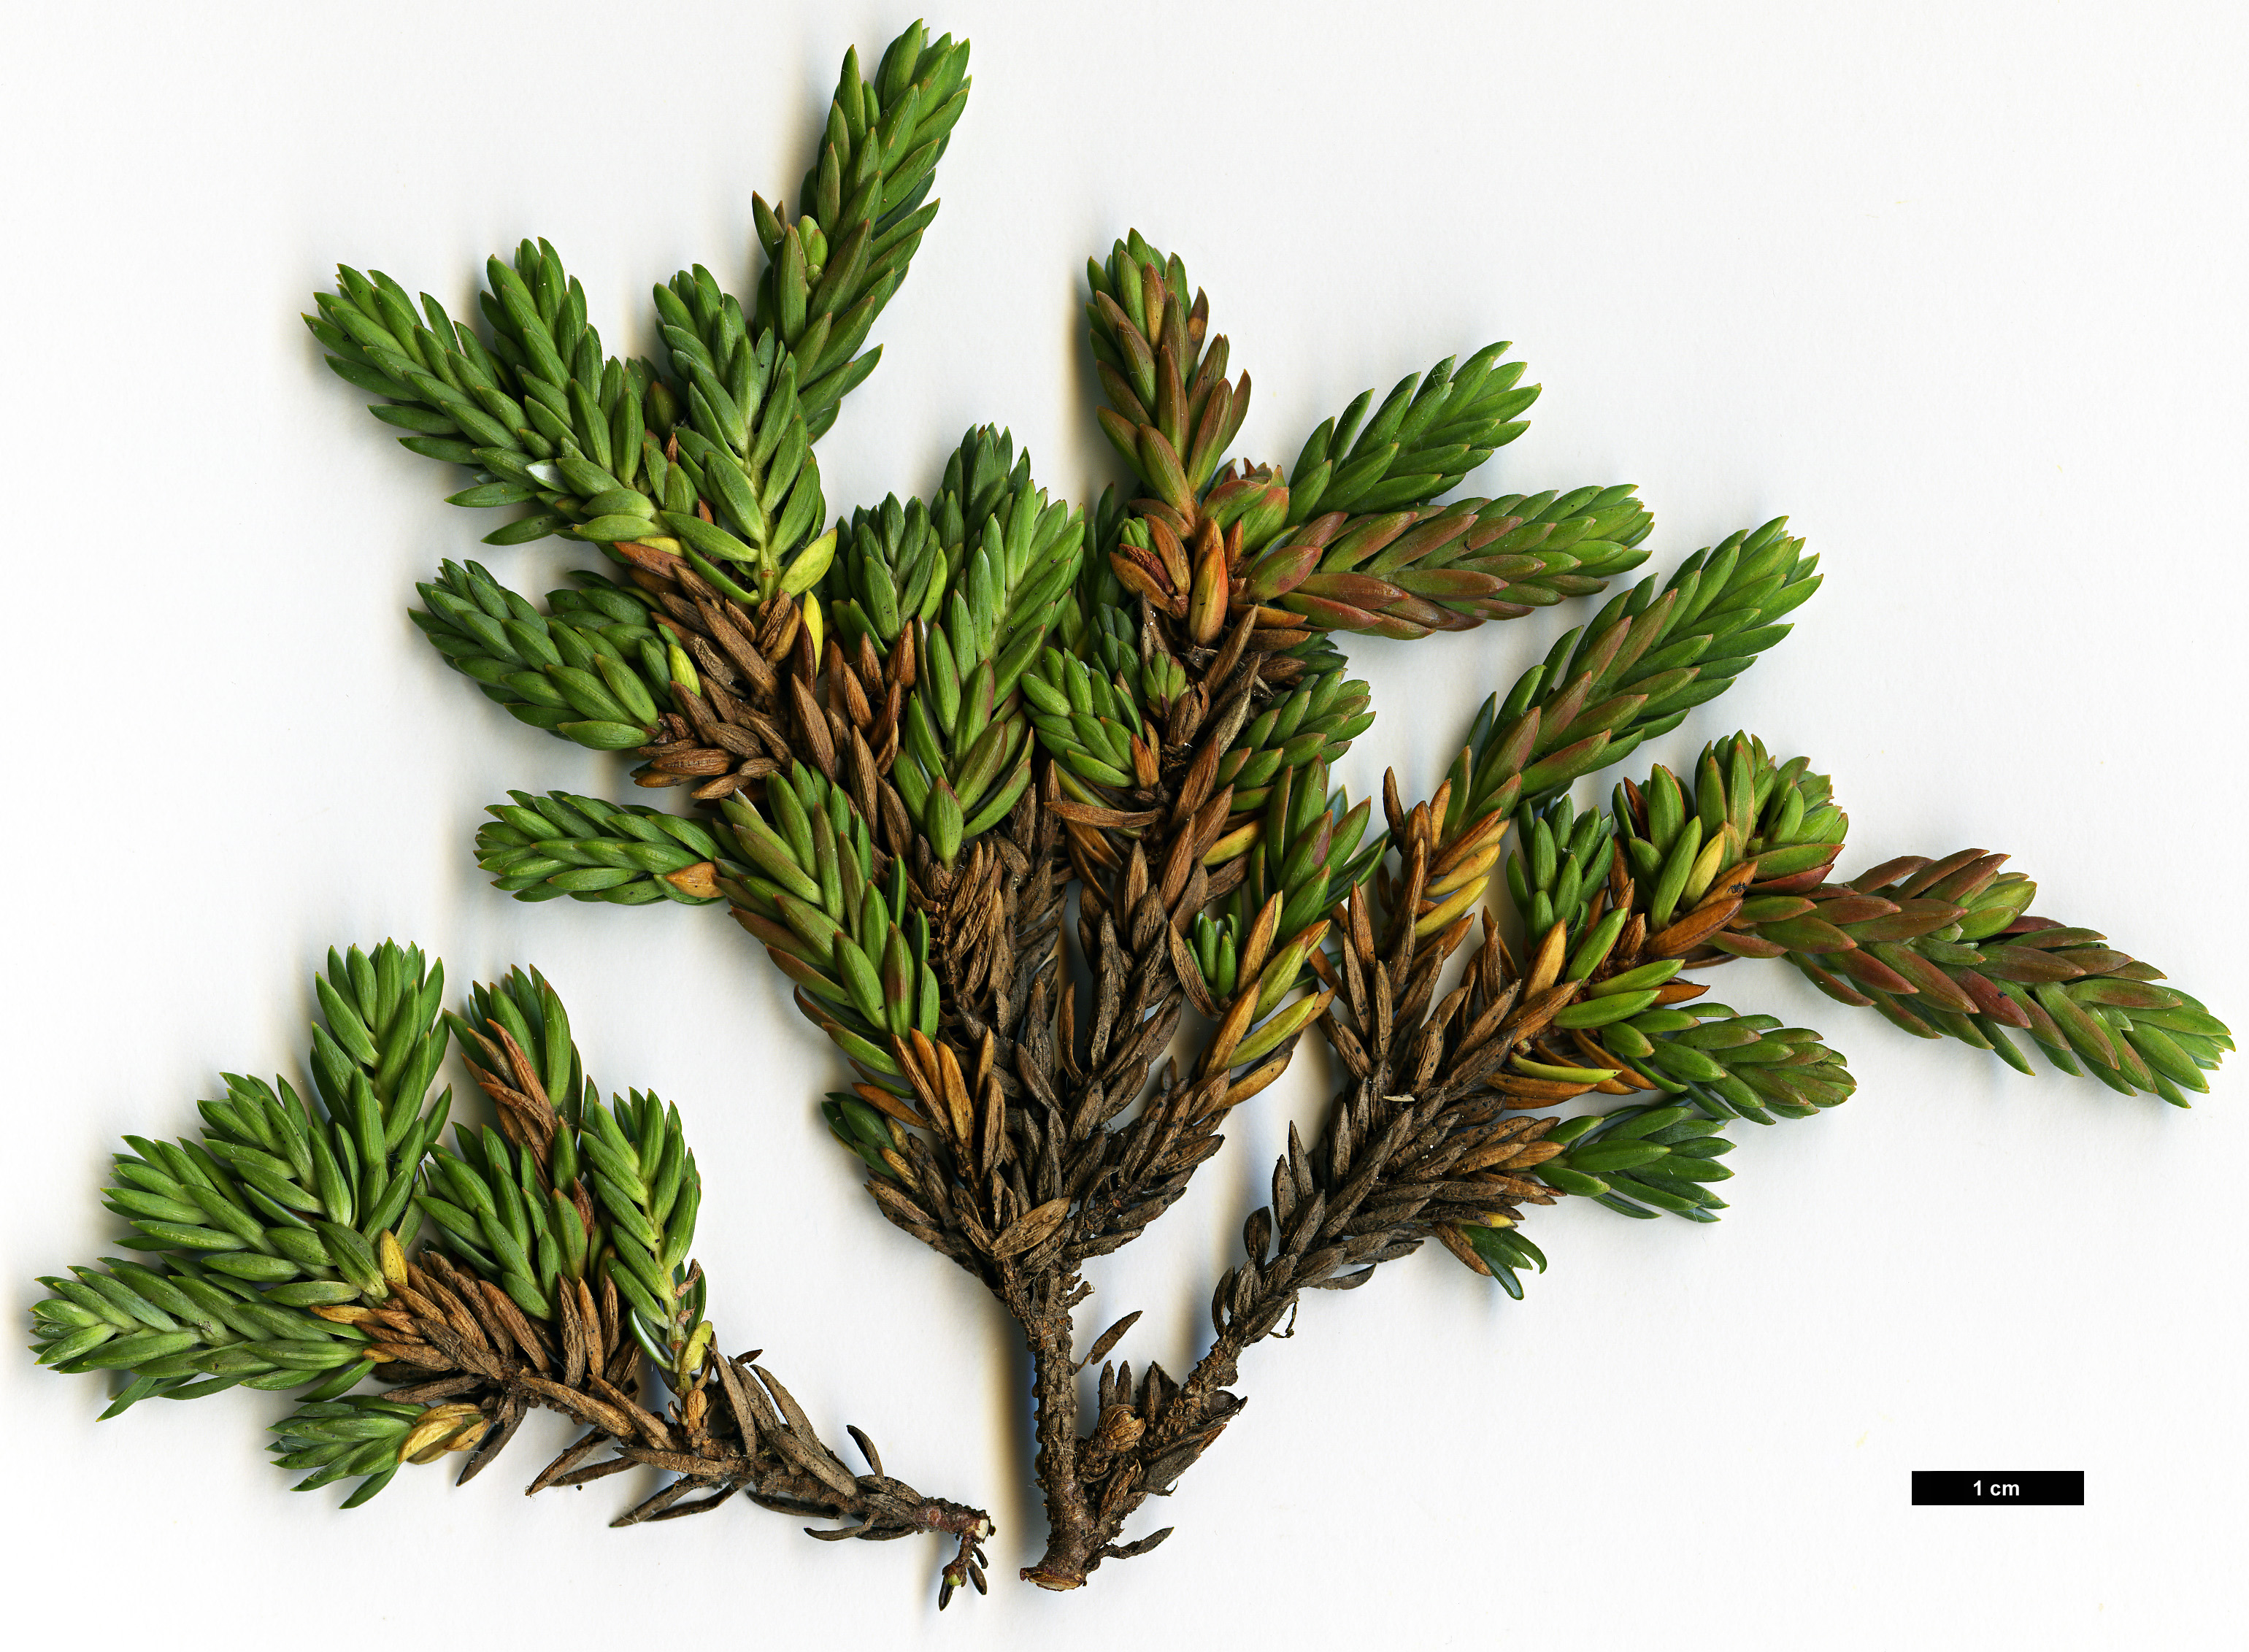 High resolution image: Family: Cupressaceae - Genus: Juniperus - Taxon: taxifolia - SpeciesSub: var. lutchuensis